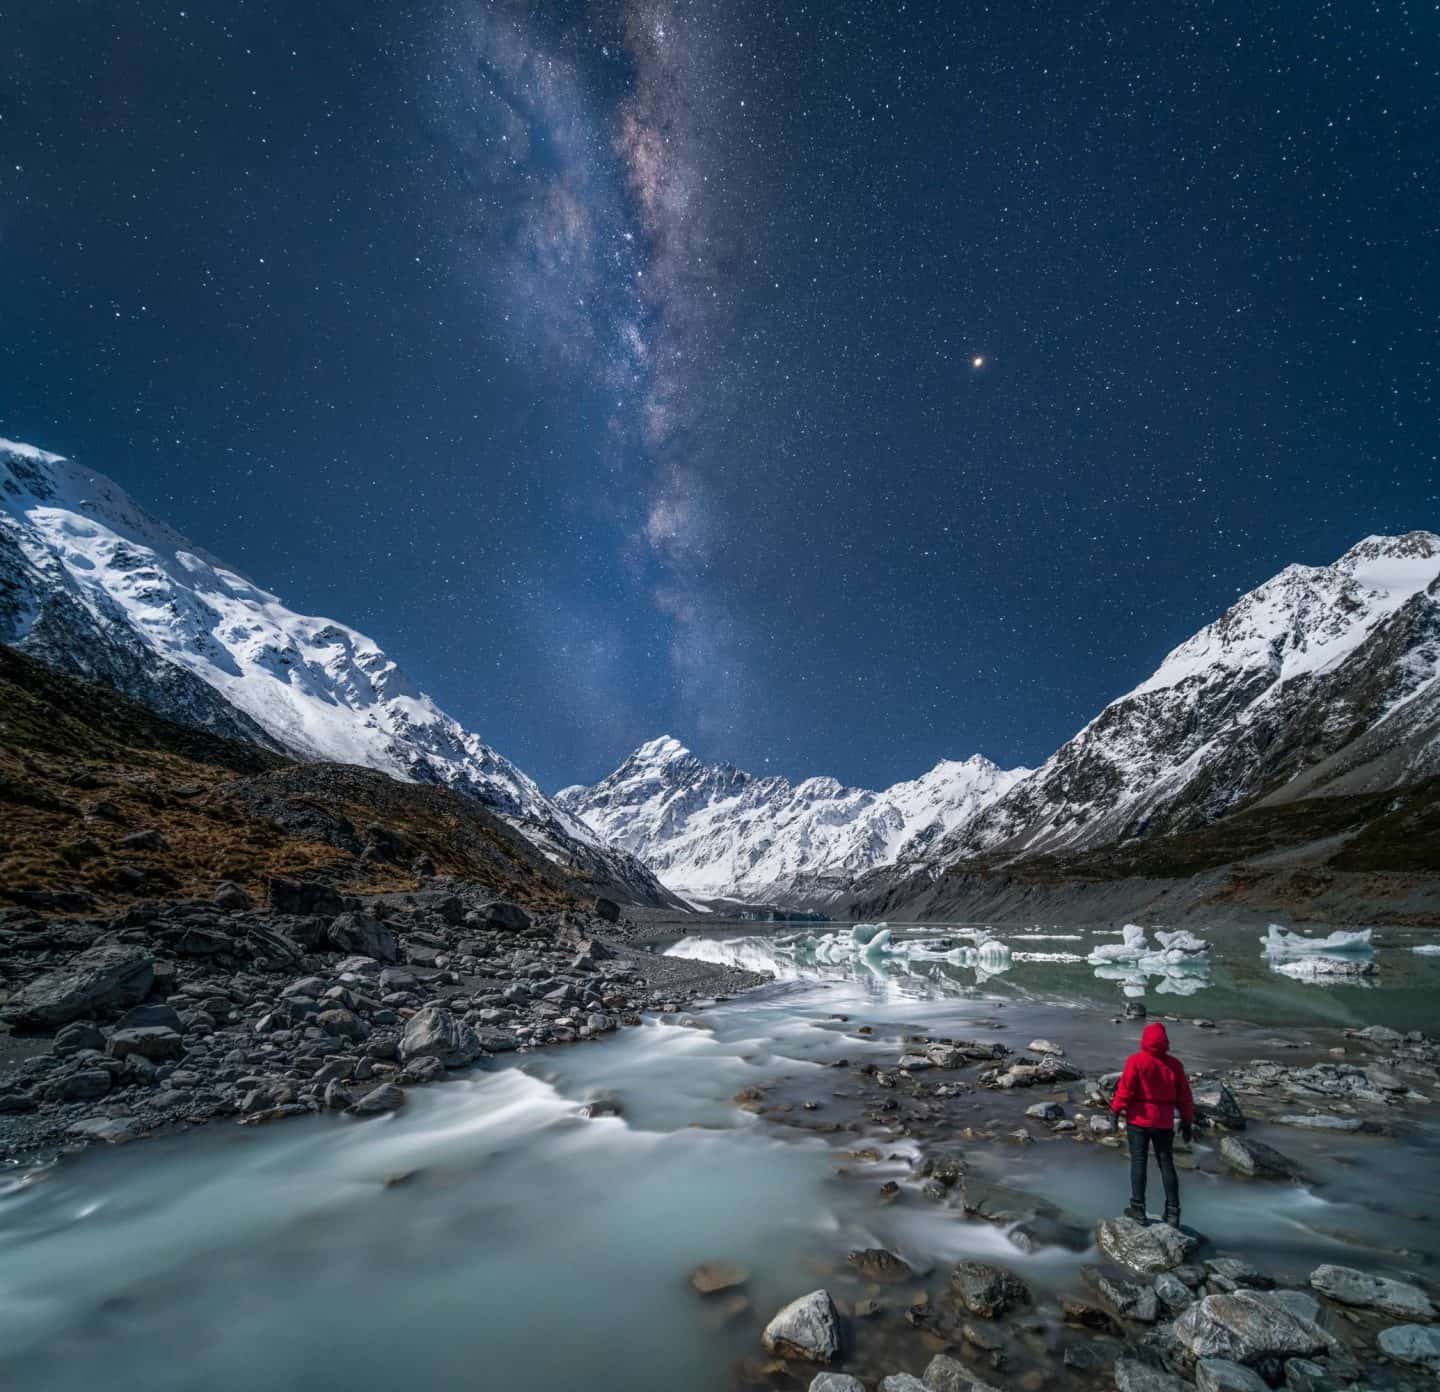 Lunar light reflects from the mountains of Mt Cook in this night photography image from Aoraki.